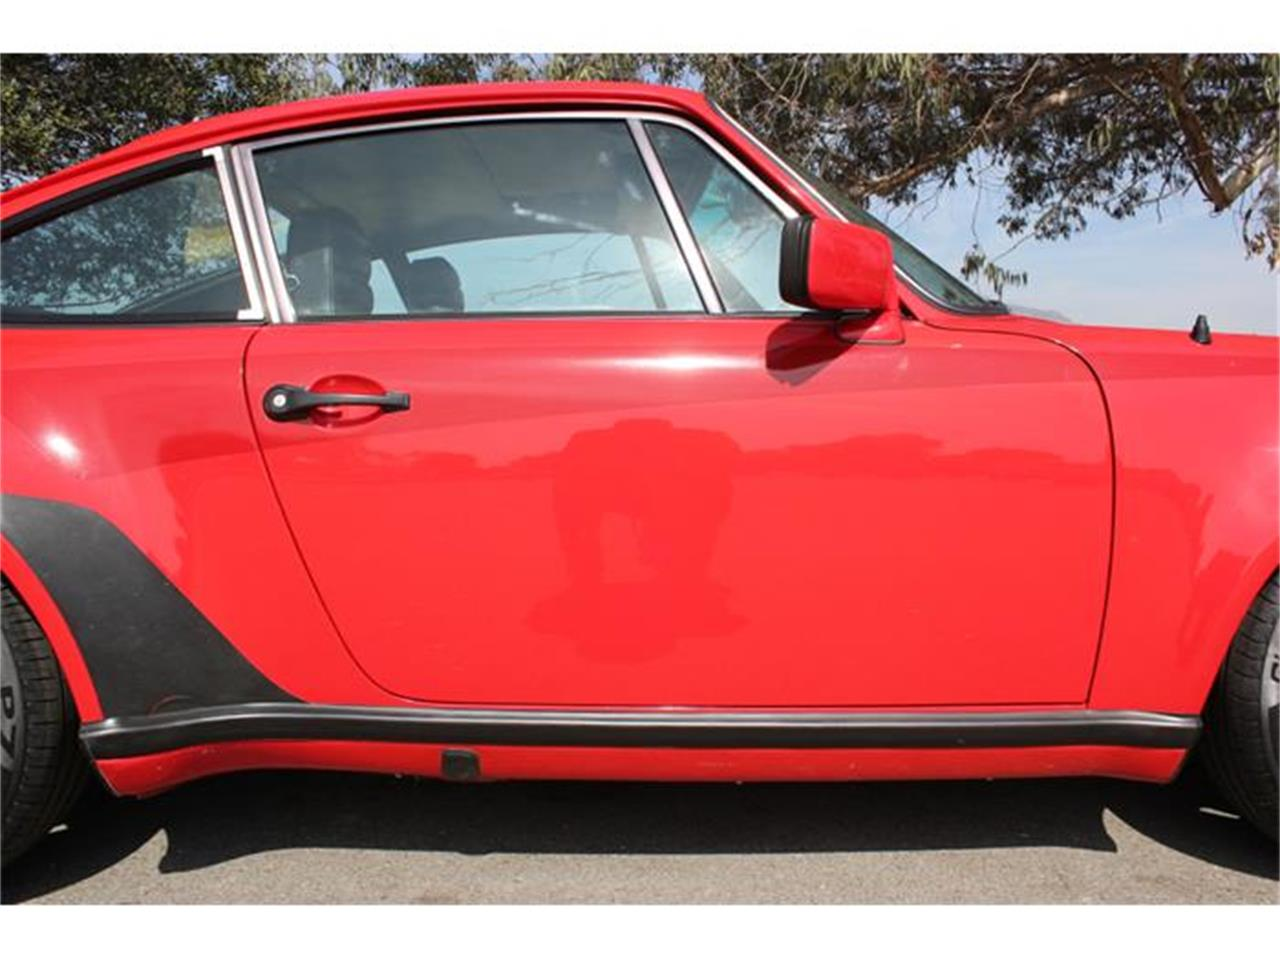 Large Picture of 1979 Porsche 930 Turbo located in California Offered by Precious Metals - GOQB